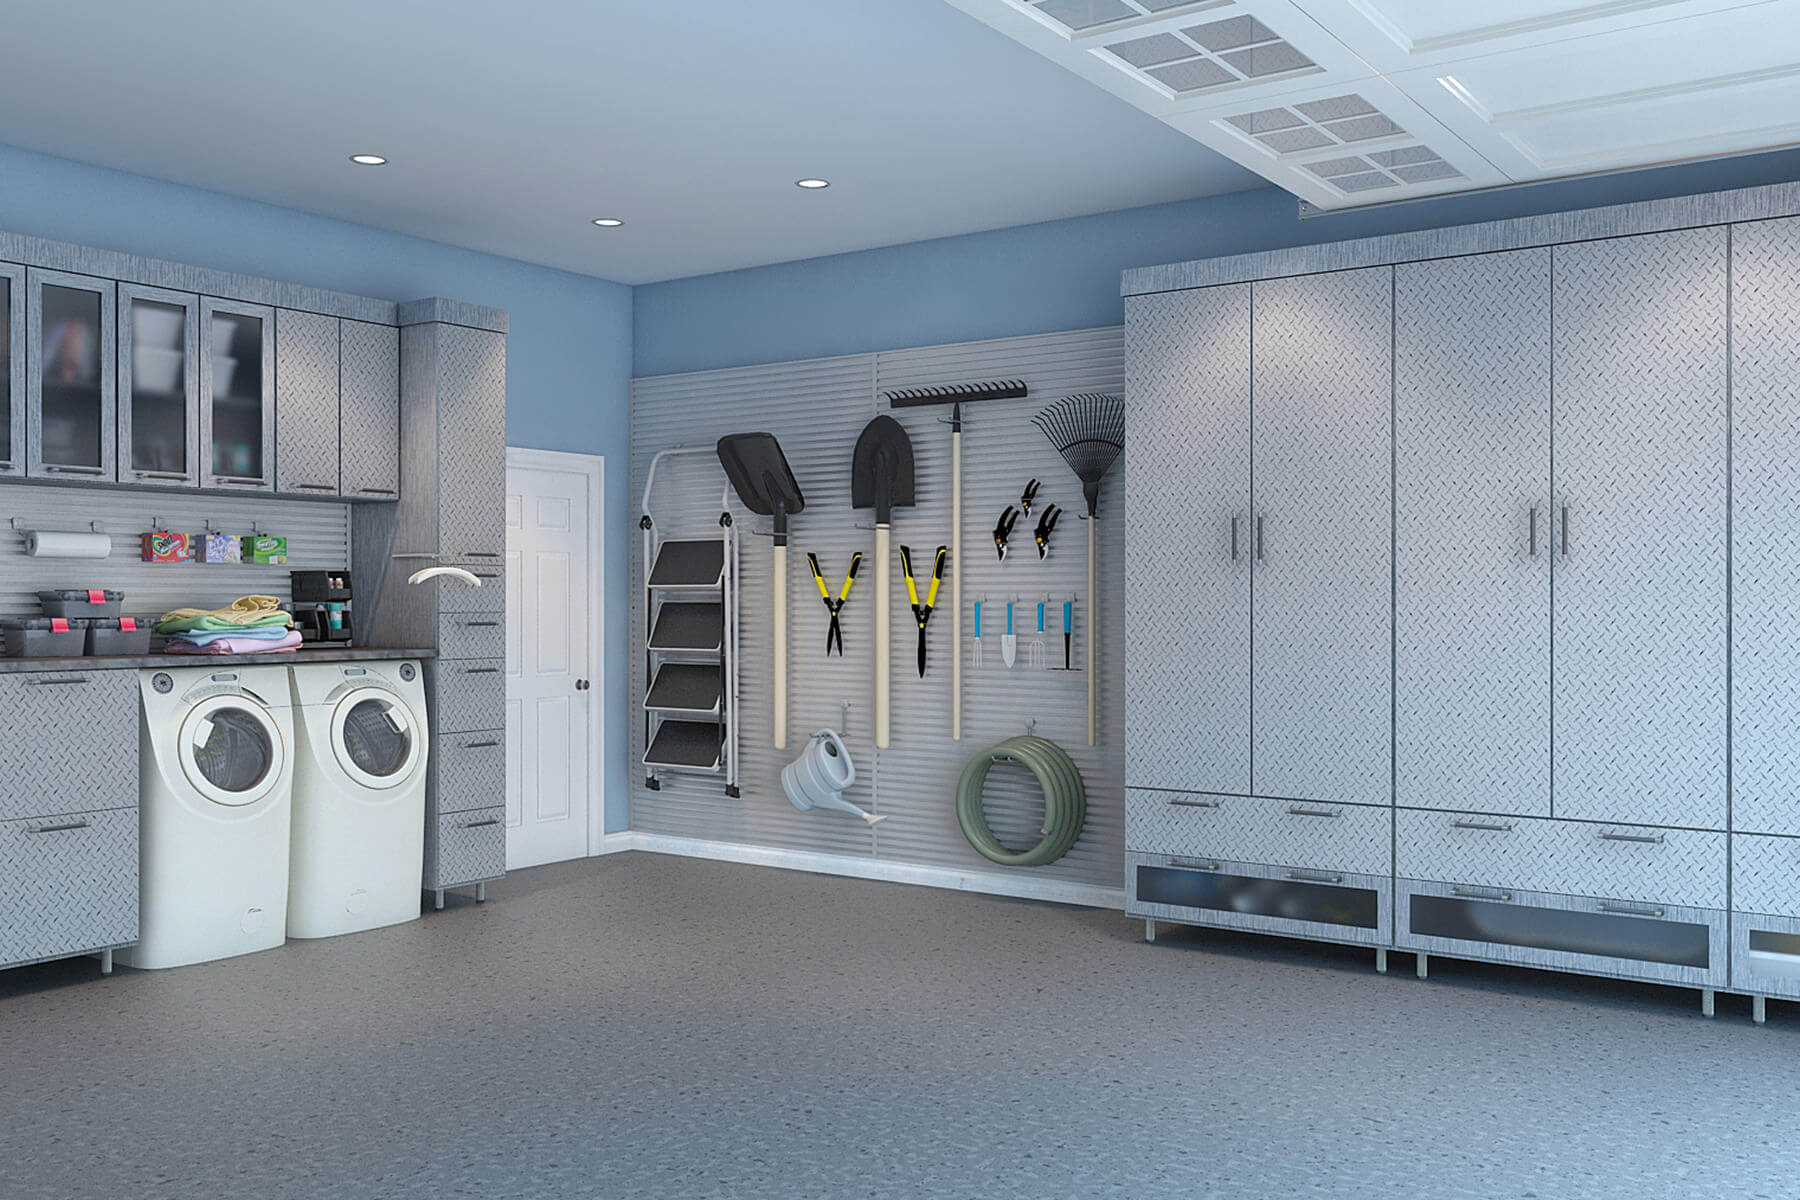 101 Incredible Laundry Room Ideas for 2017